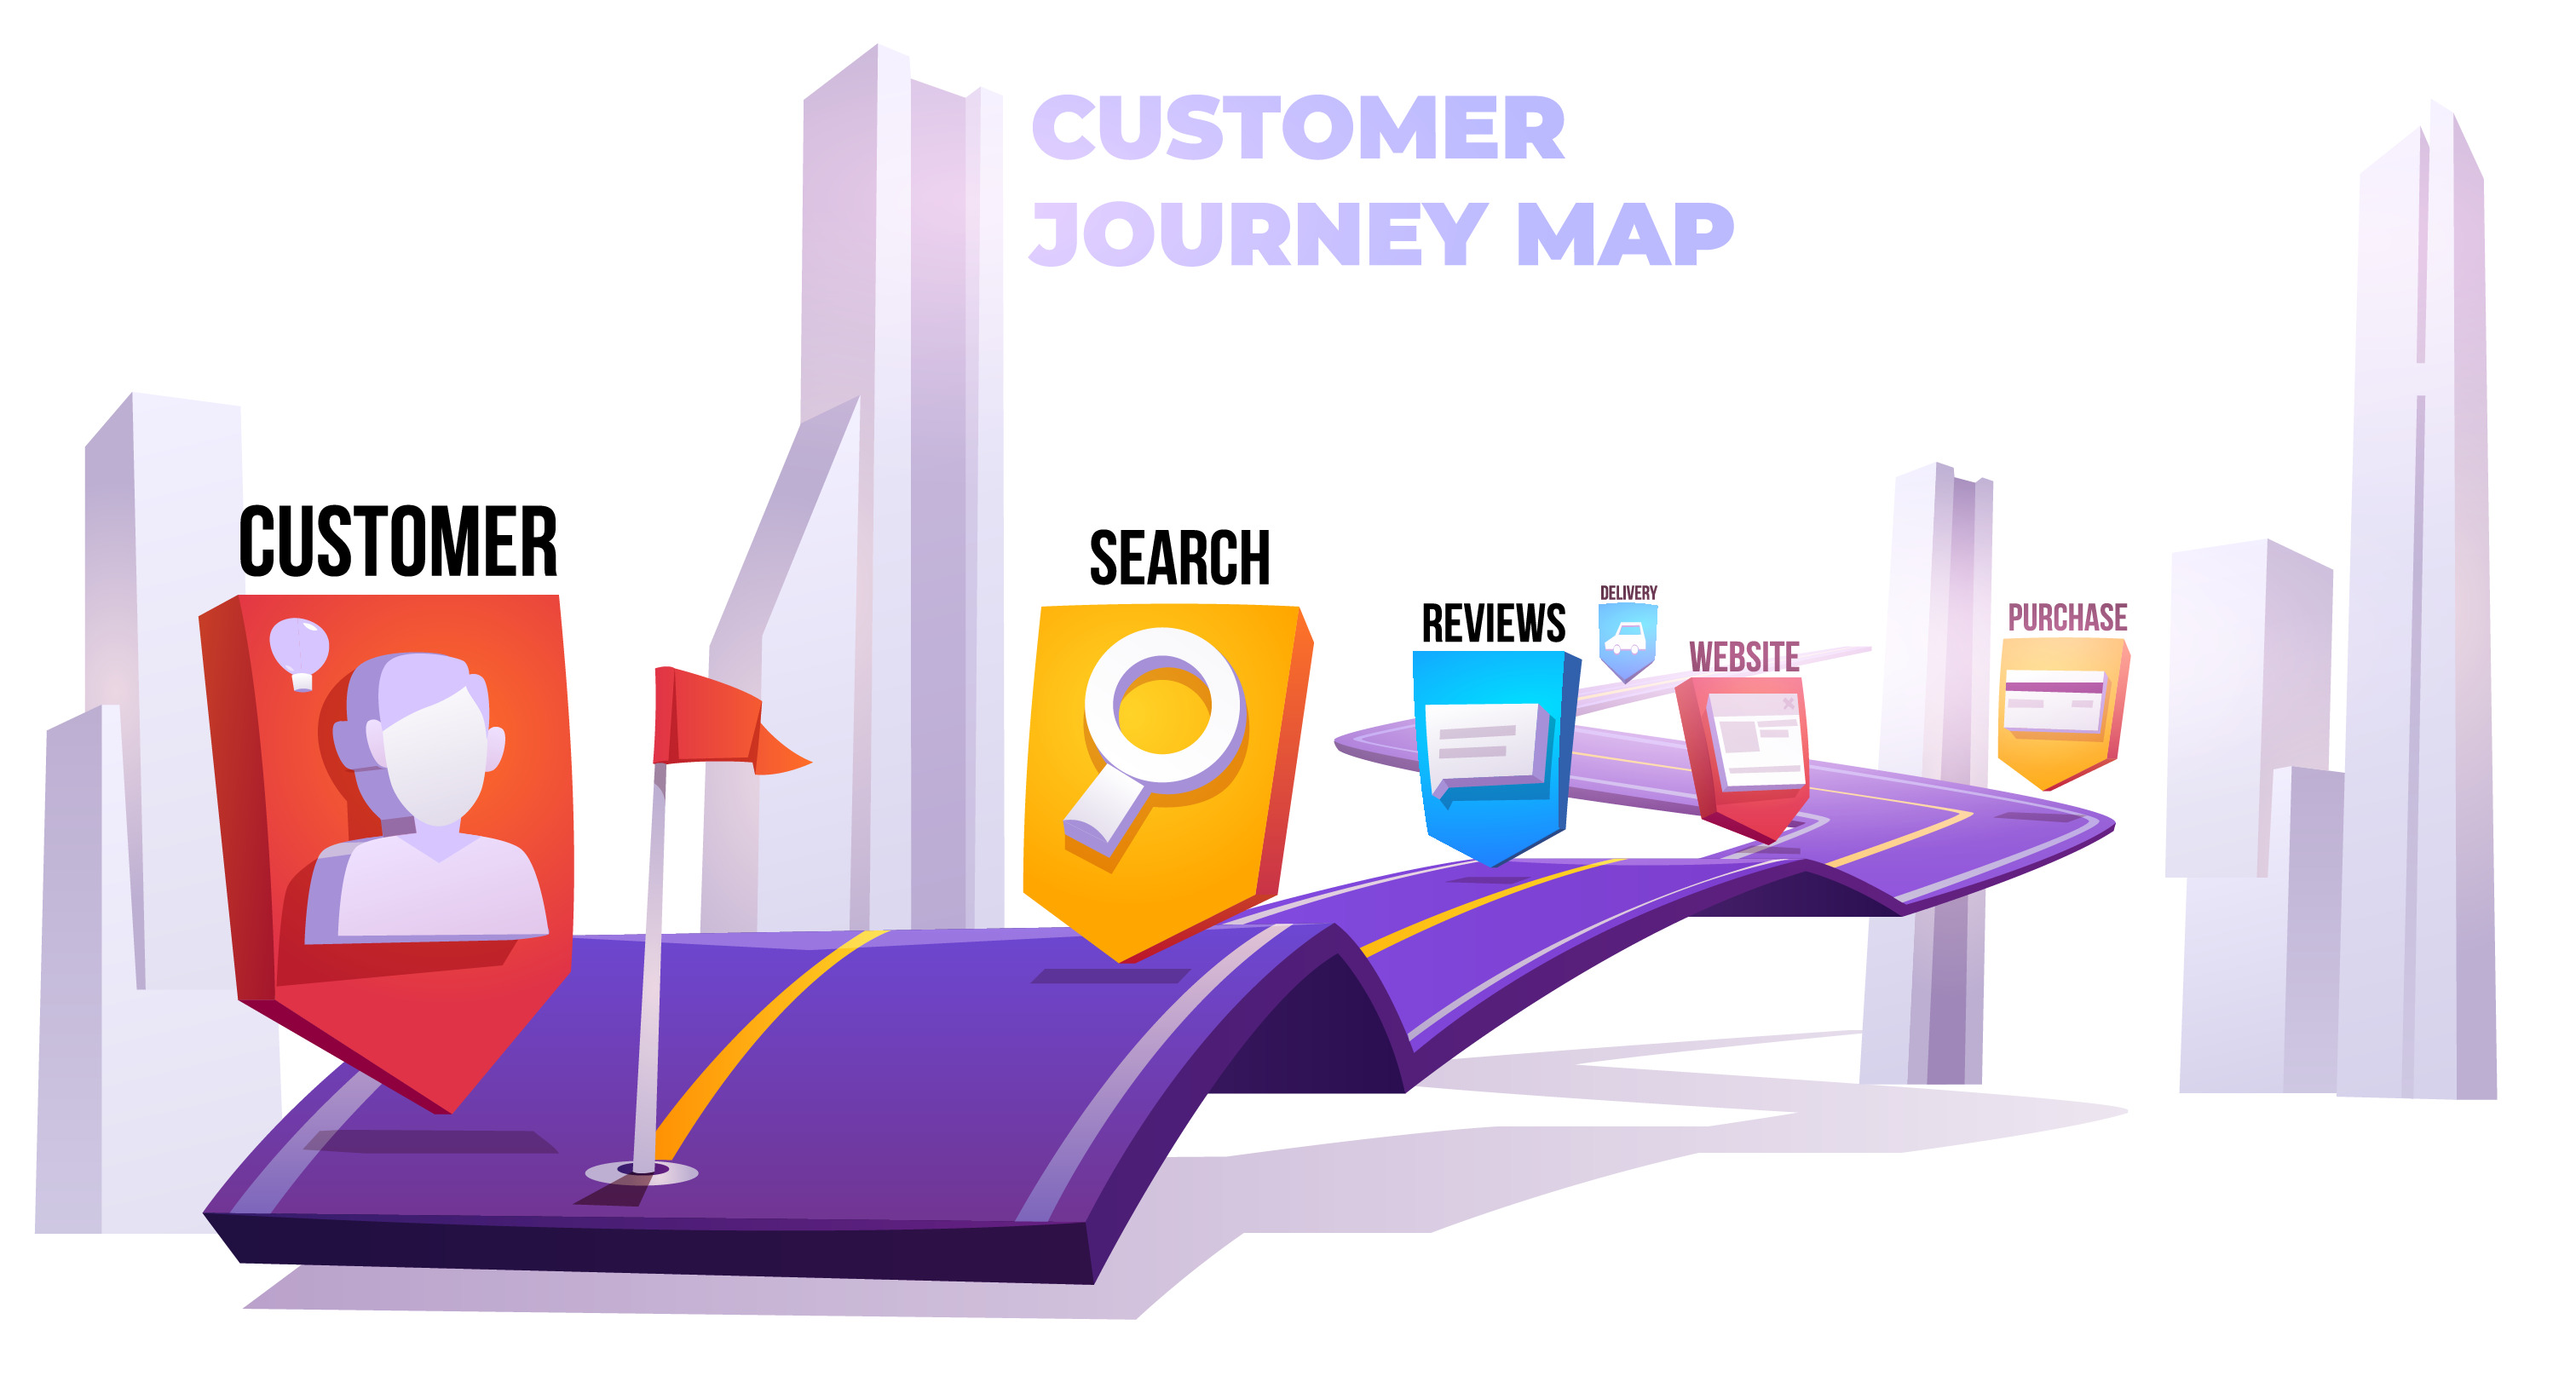 Customer Journey Digital Marketing Oath to Purchase